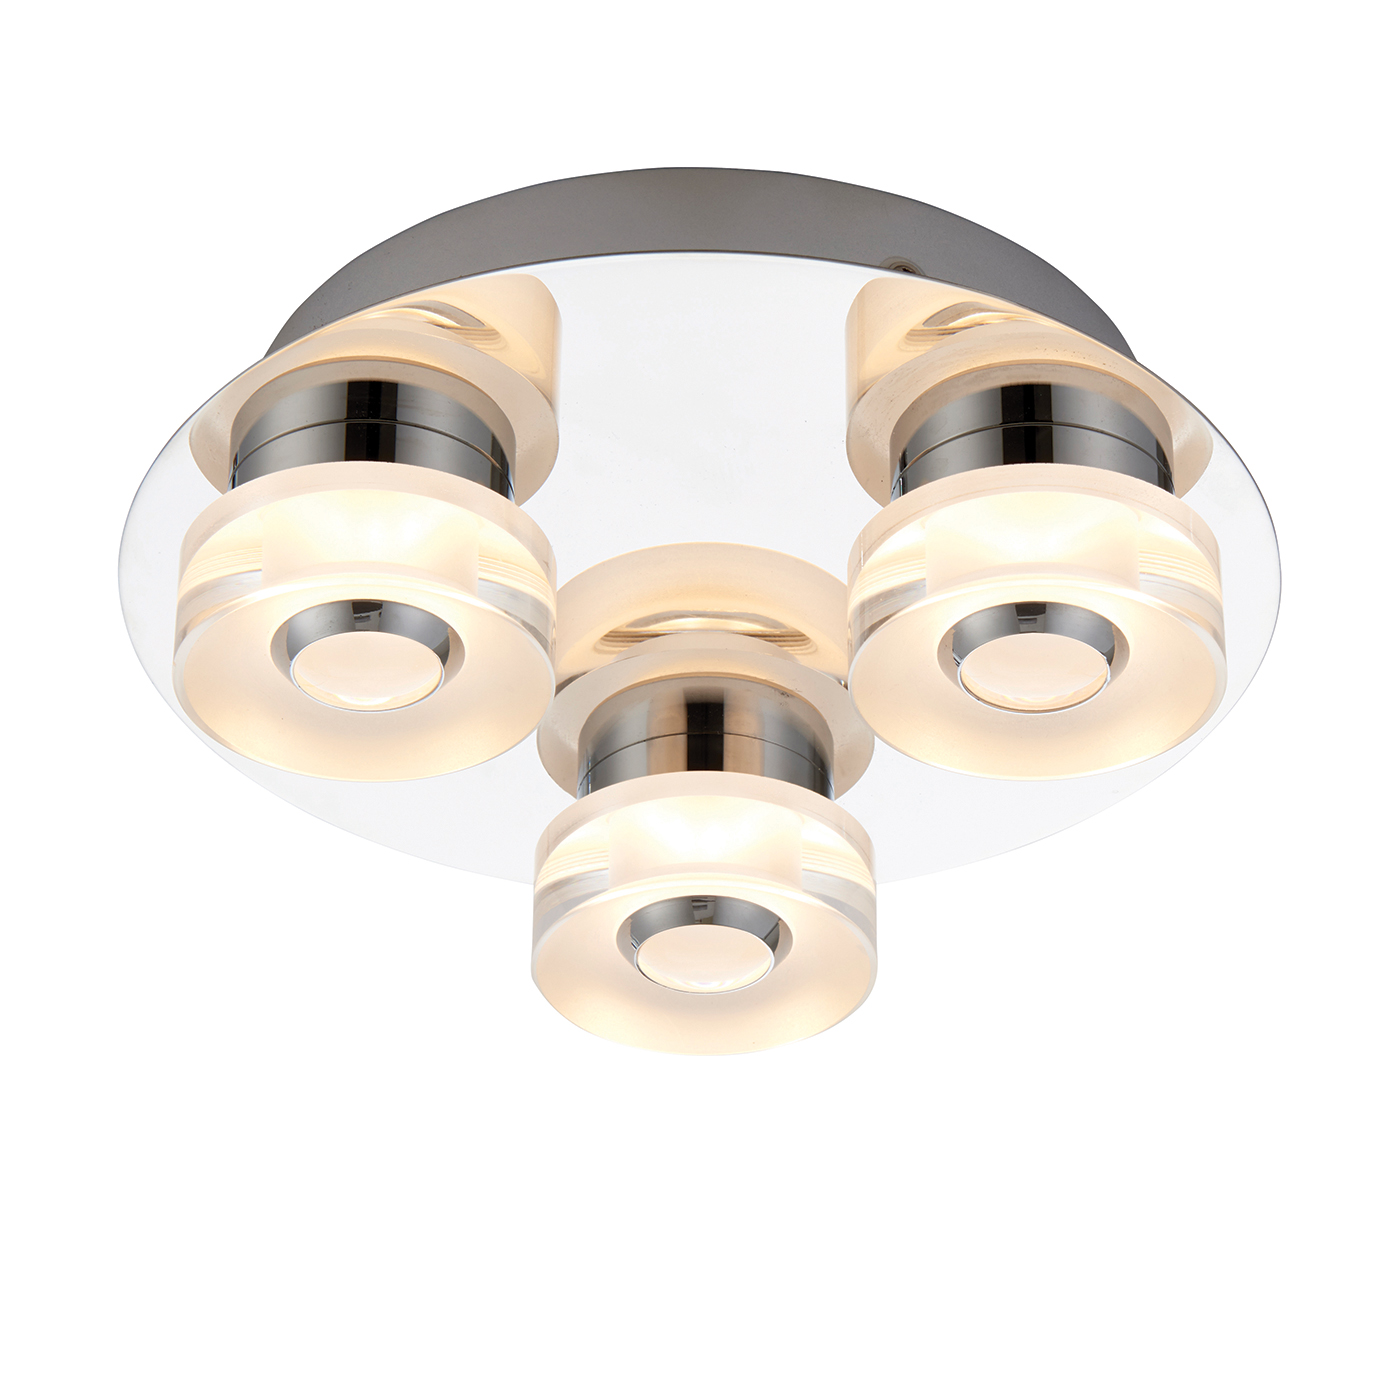 Endon Rita 3lt flush LED bathroom ceiling light IP44 4.5W & 0.45W chrome acrylic